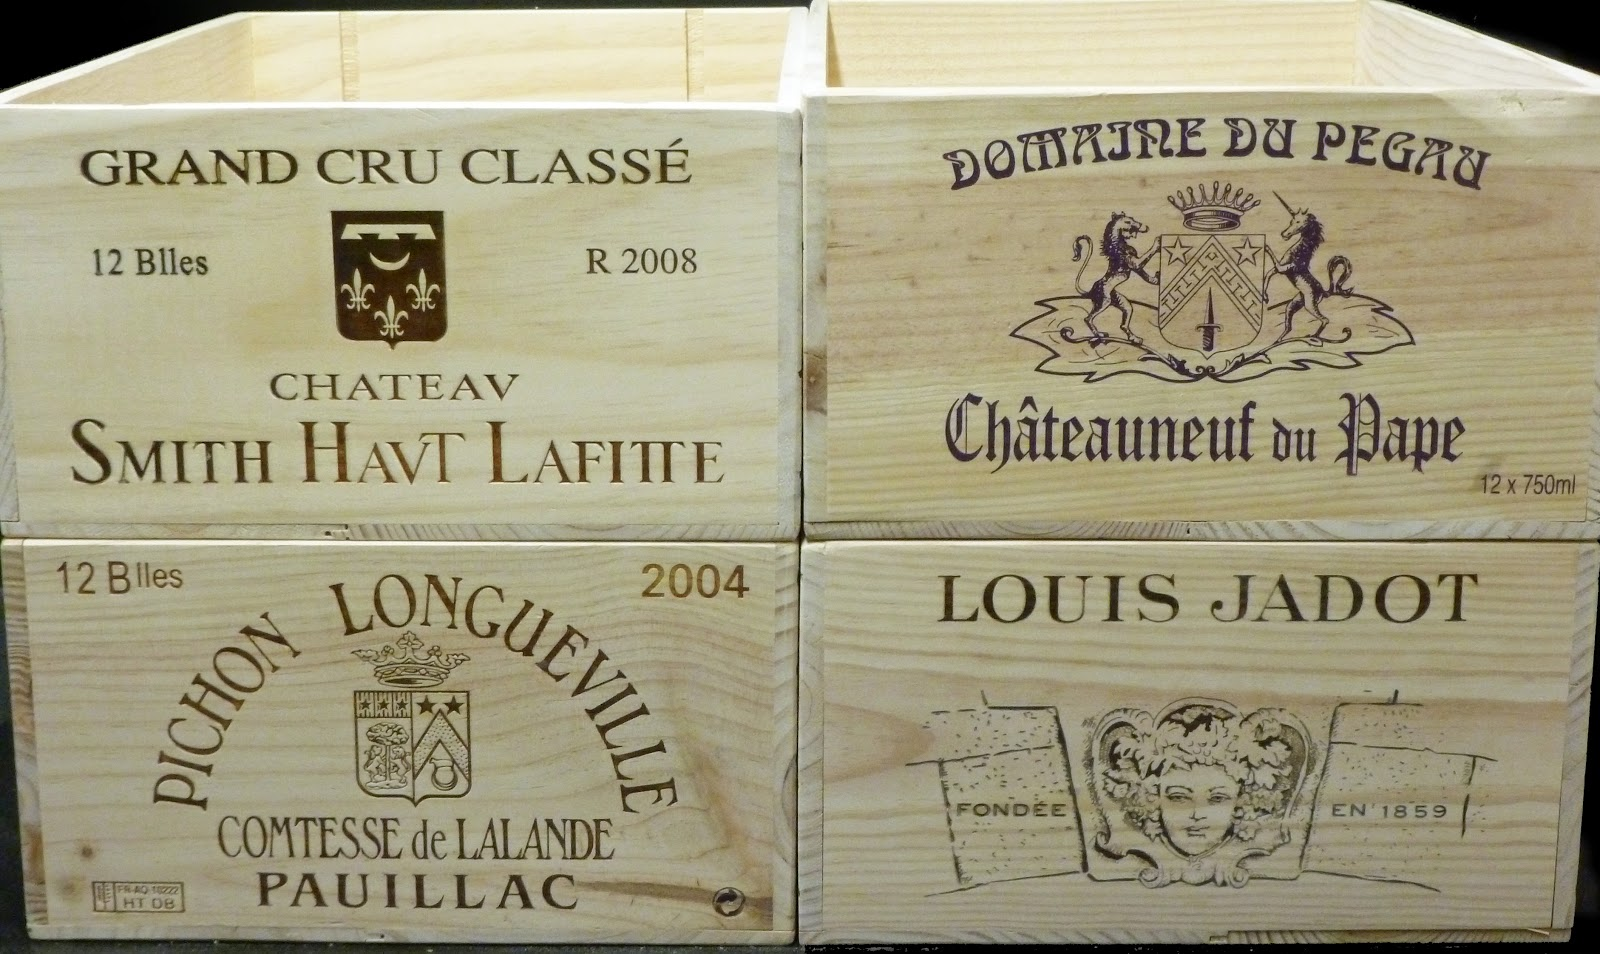 Wooden Wine Boxes & Wine Crates: All About Wooden Wine Crates (OWCs)